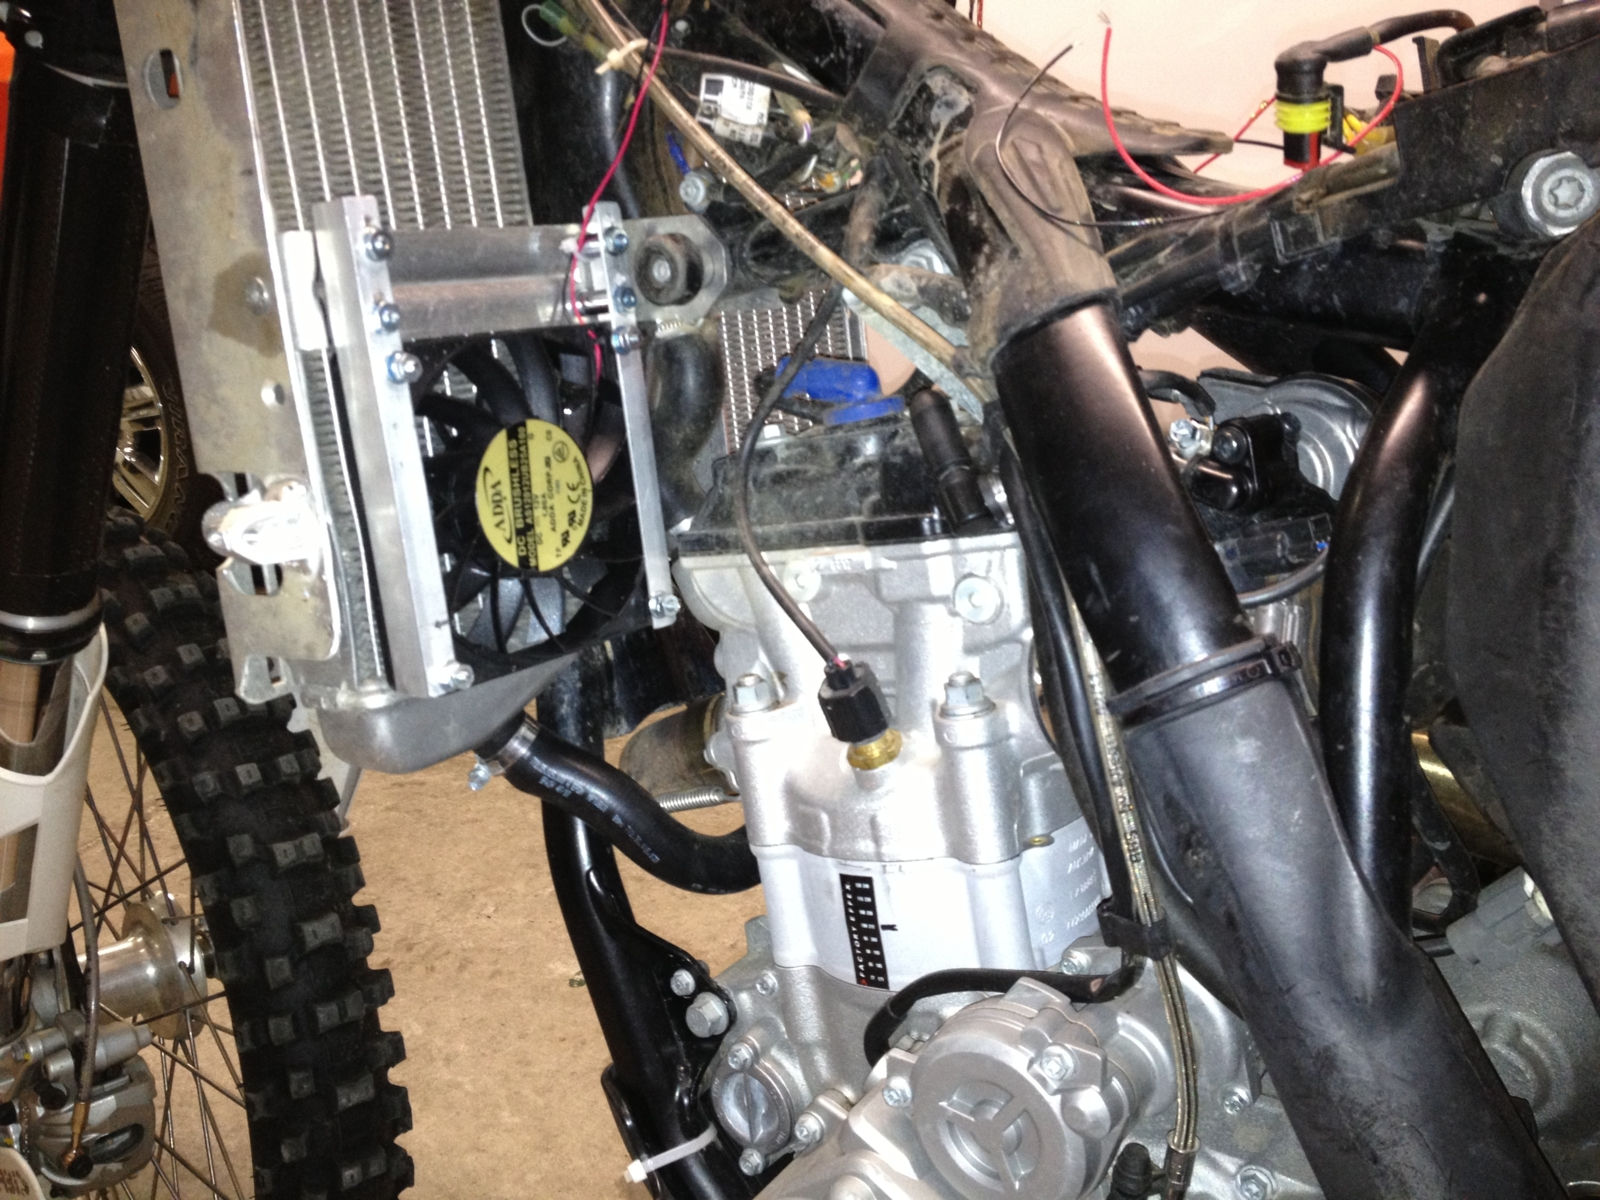 2012 Ktm 350 Sxf Fan Installation South Bay Riders